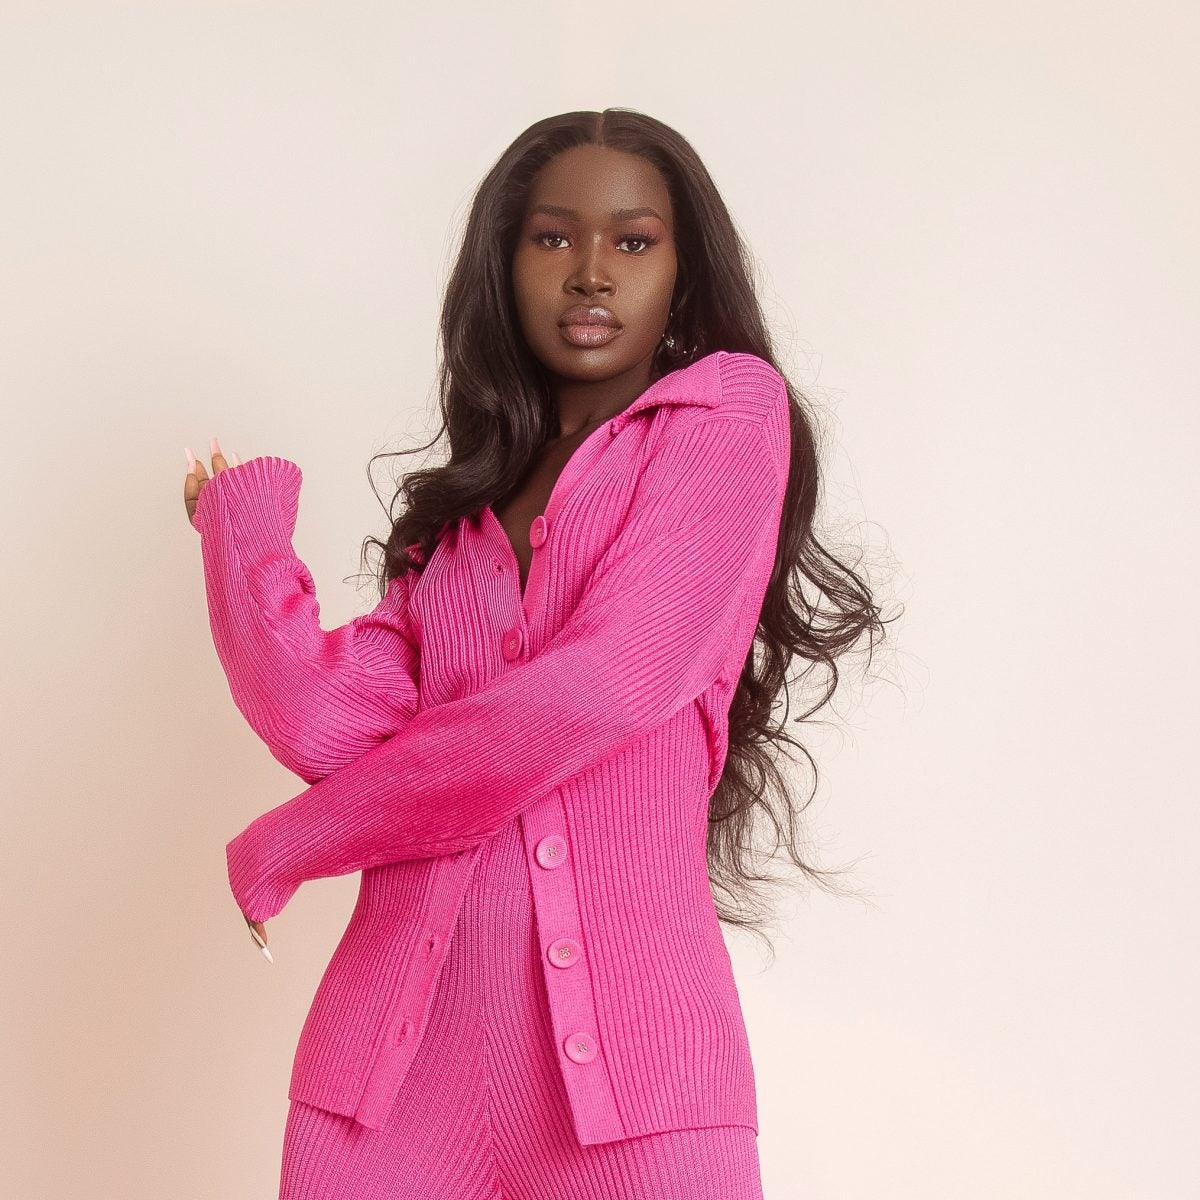 Shop Now: Hanifa Drrops 2nd Release From Spring Capsule Collection